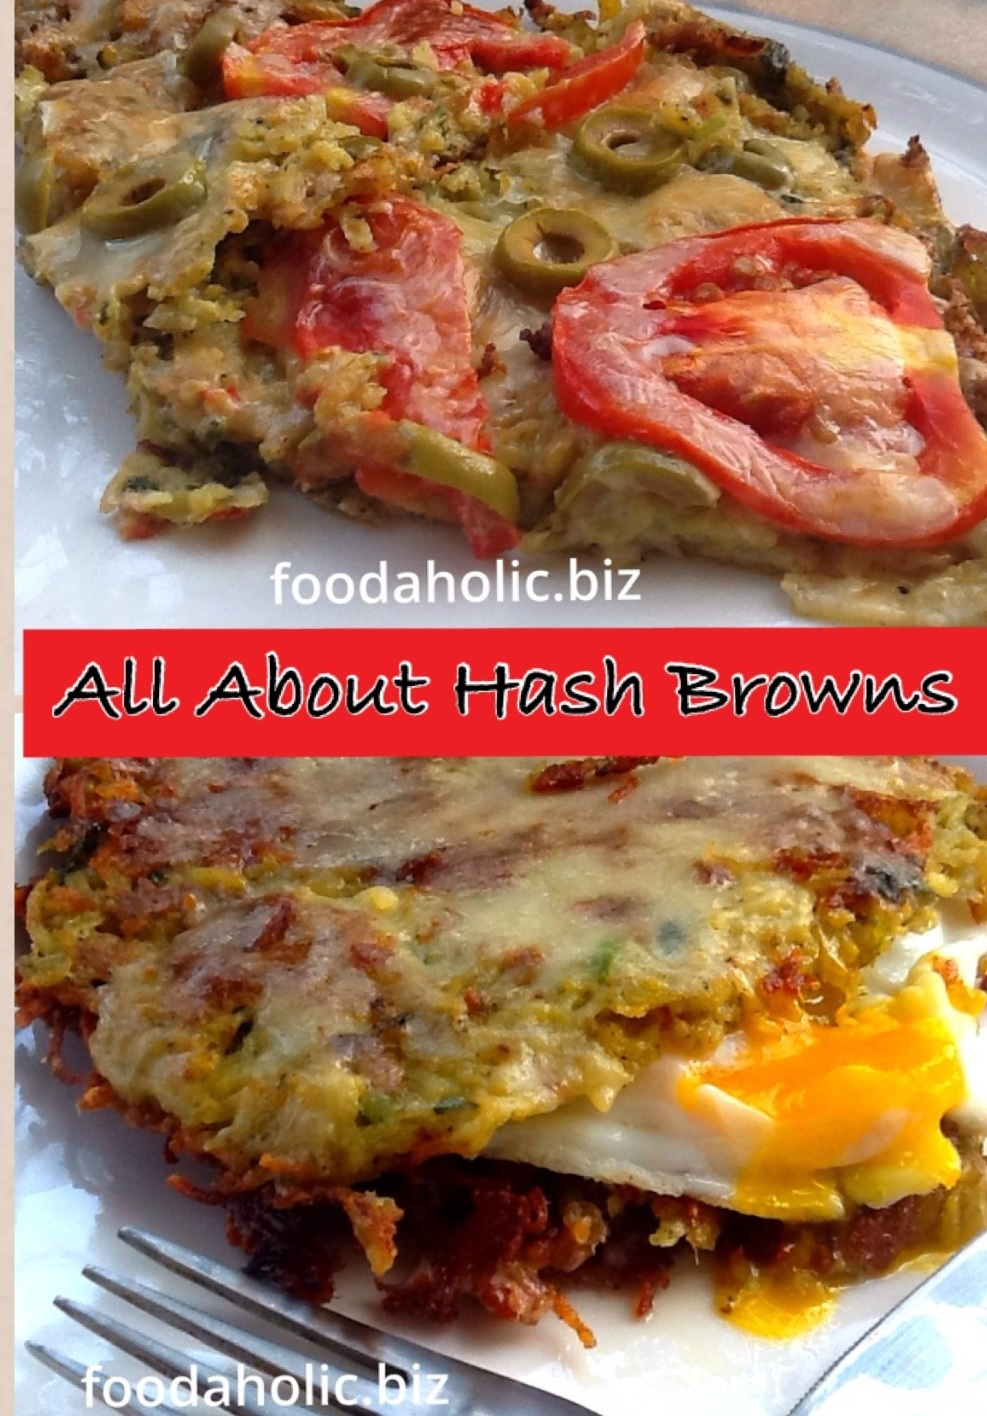 All About Hash Browns, Hash Brown Pizza, Hash Brown Egg Sandwich :